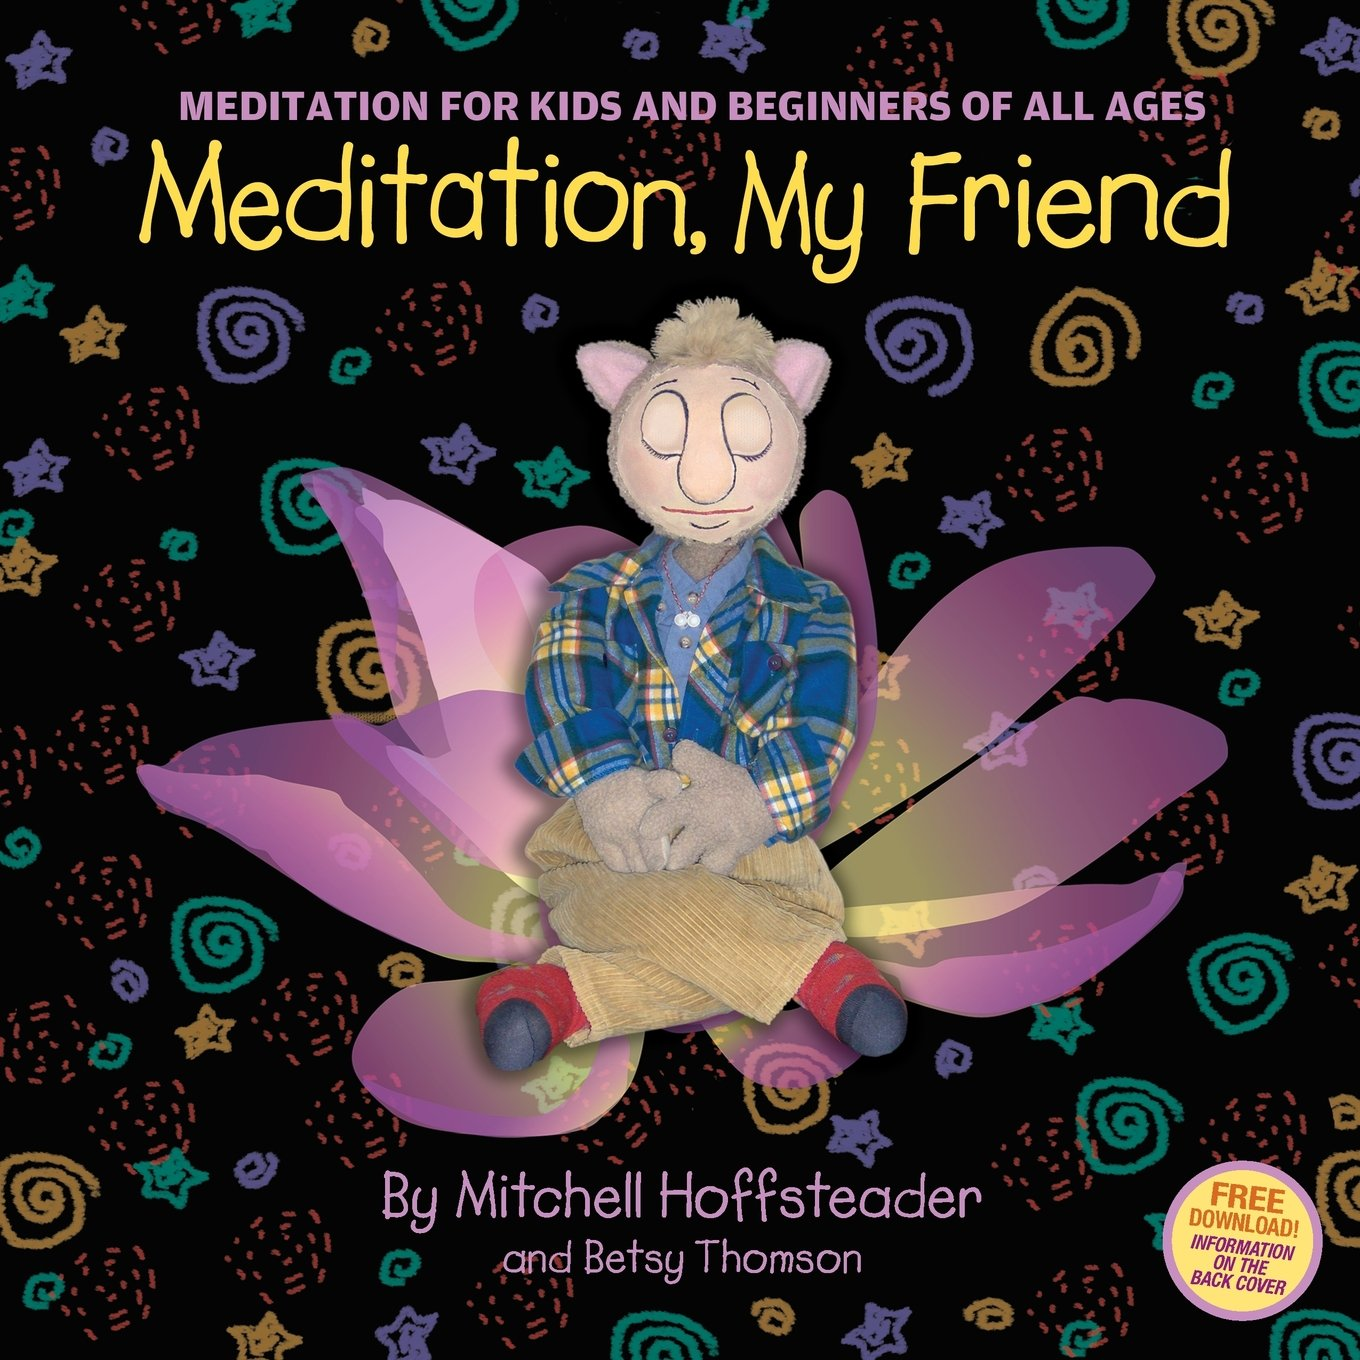 Meditation, My Friend: Meditation for Kids and Beginners of all Ages